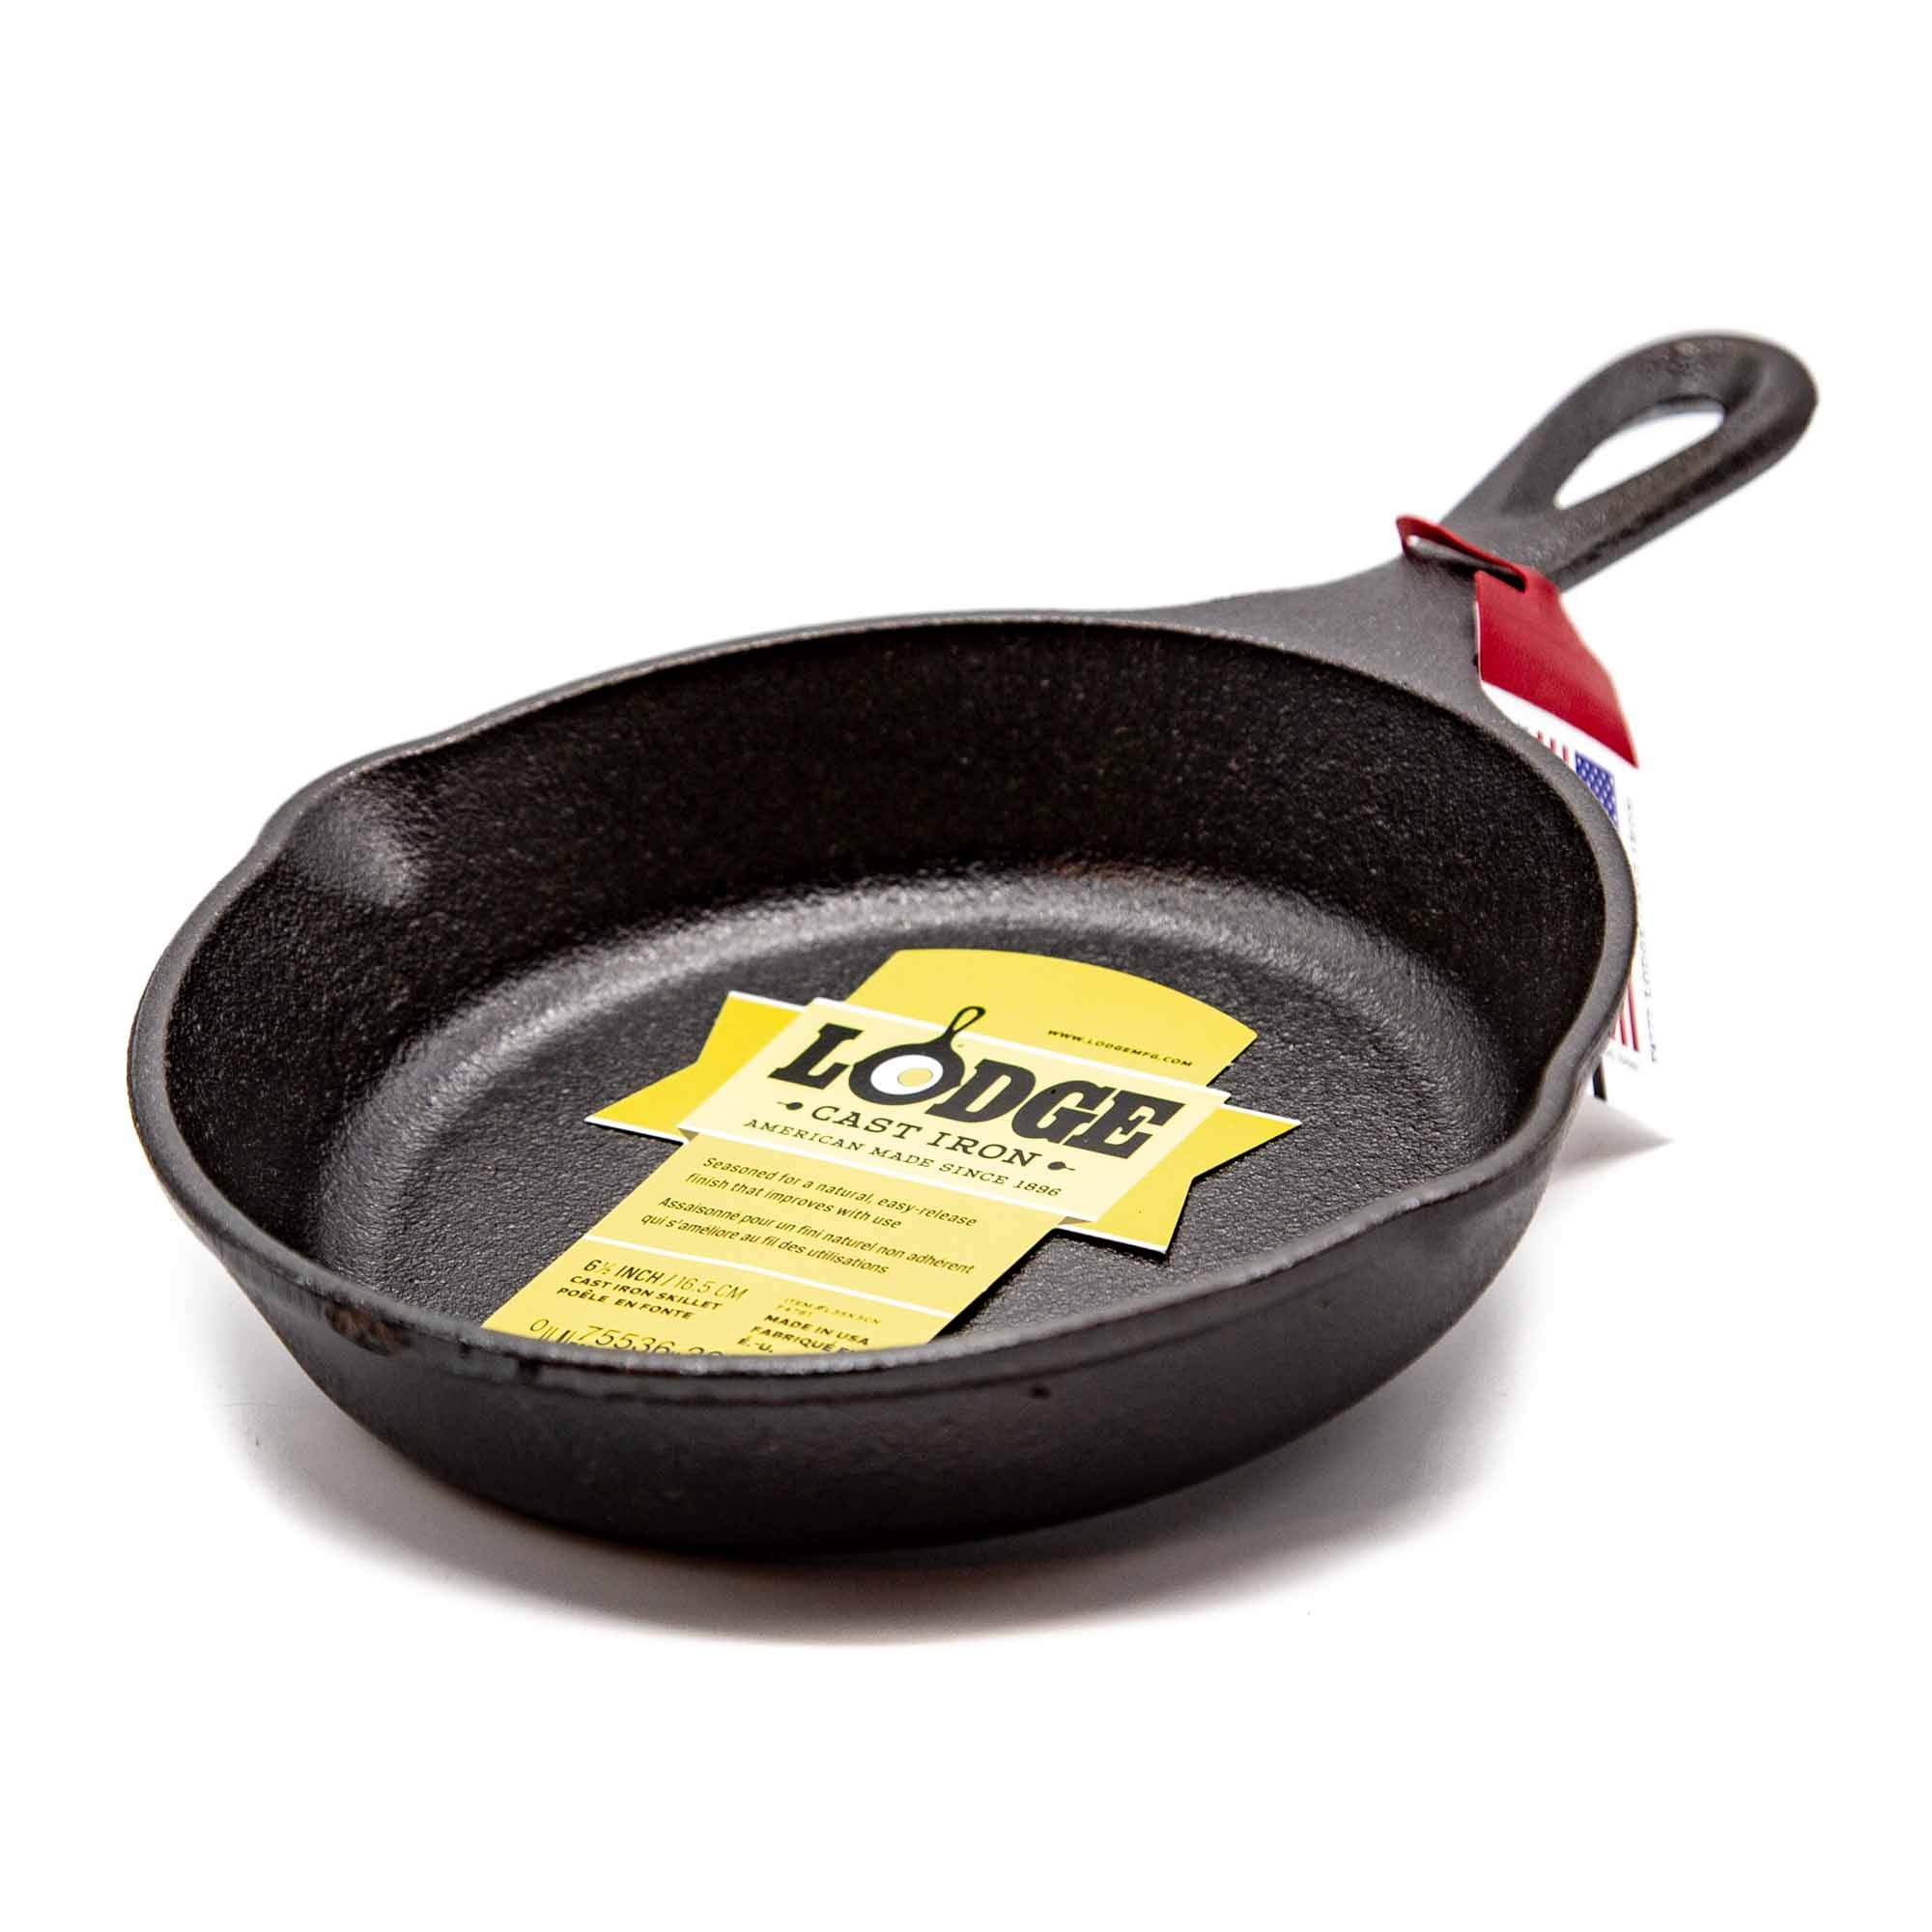 "Lodge 6.5"" Cast Iron Skillet - Mortise And Tenon"